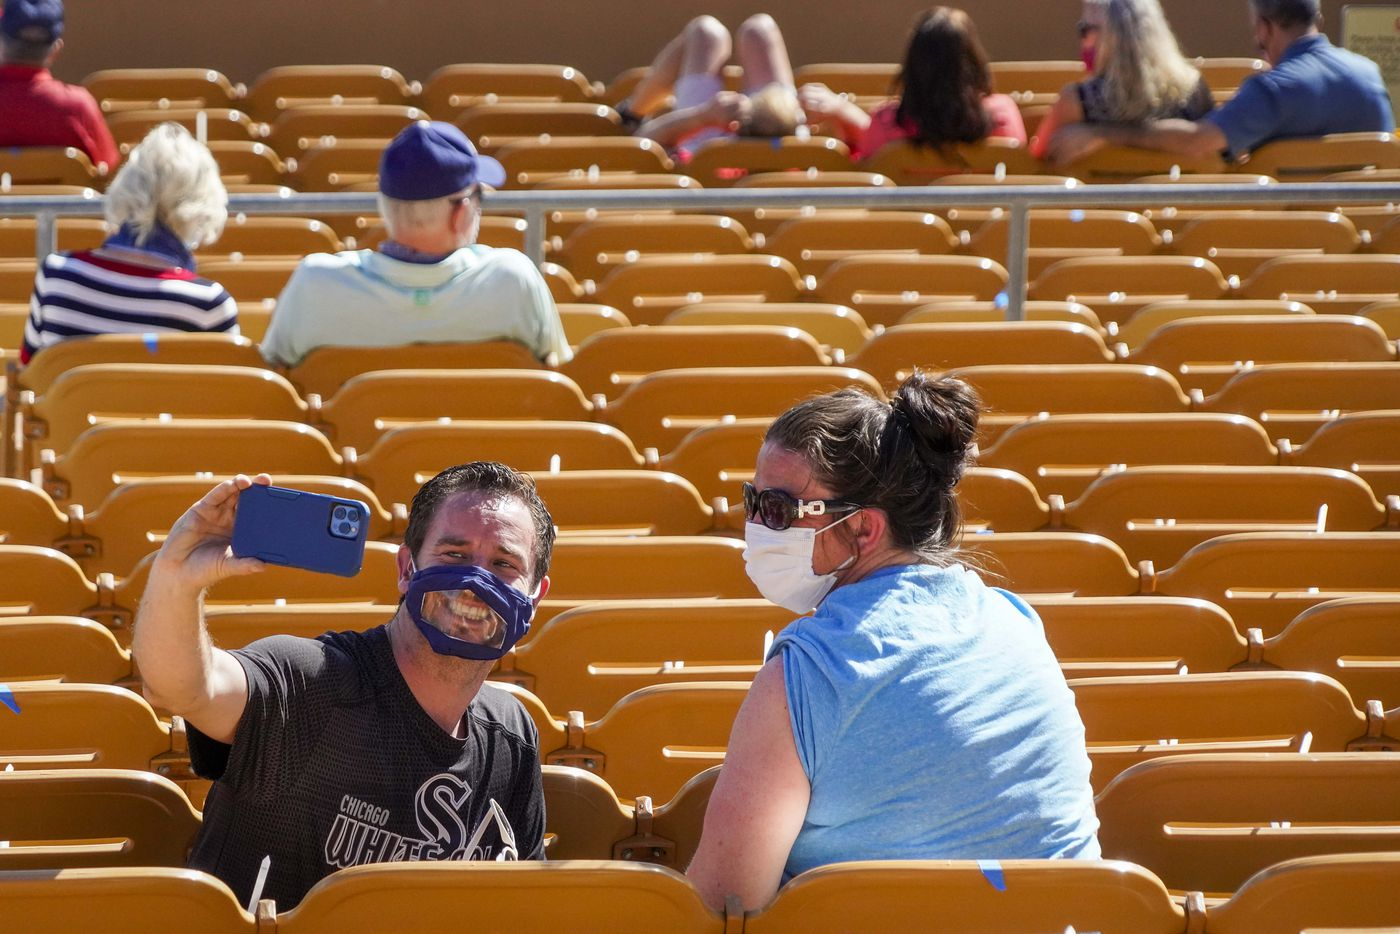 Socially distant mask wearing fans take a selfie during the sixth inning of a spring training game between the Texas Rangers and the Chicago White Sox at Camelback Ranch on Tuesday, March 2, 2021, in Phoenix, Ariz.